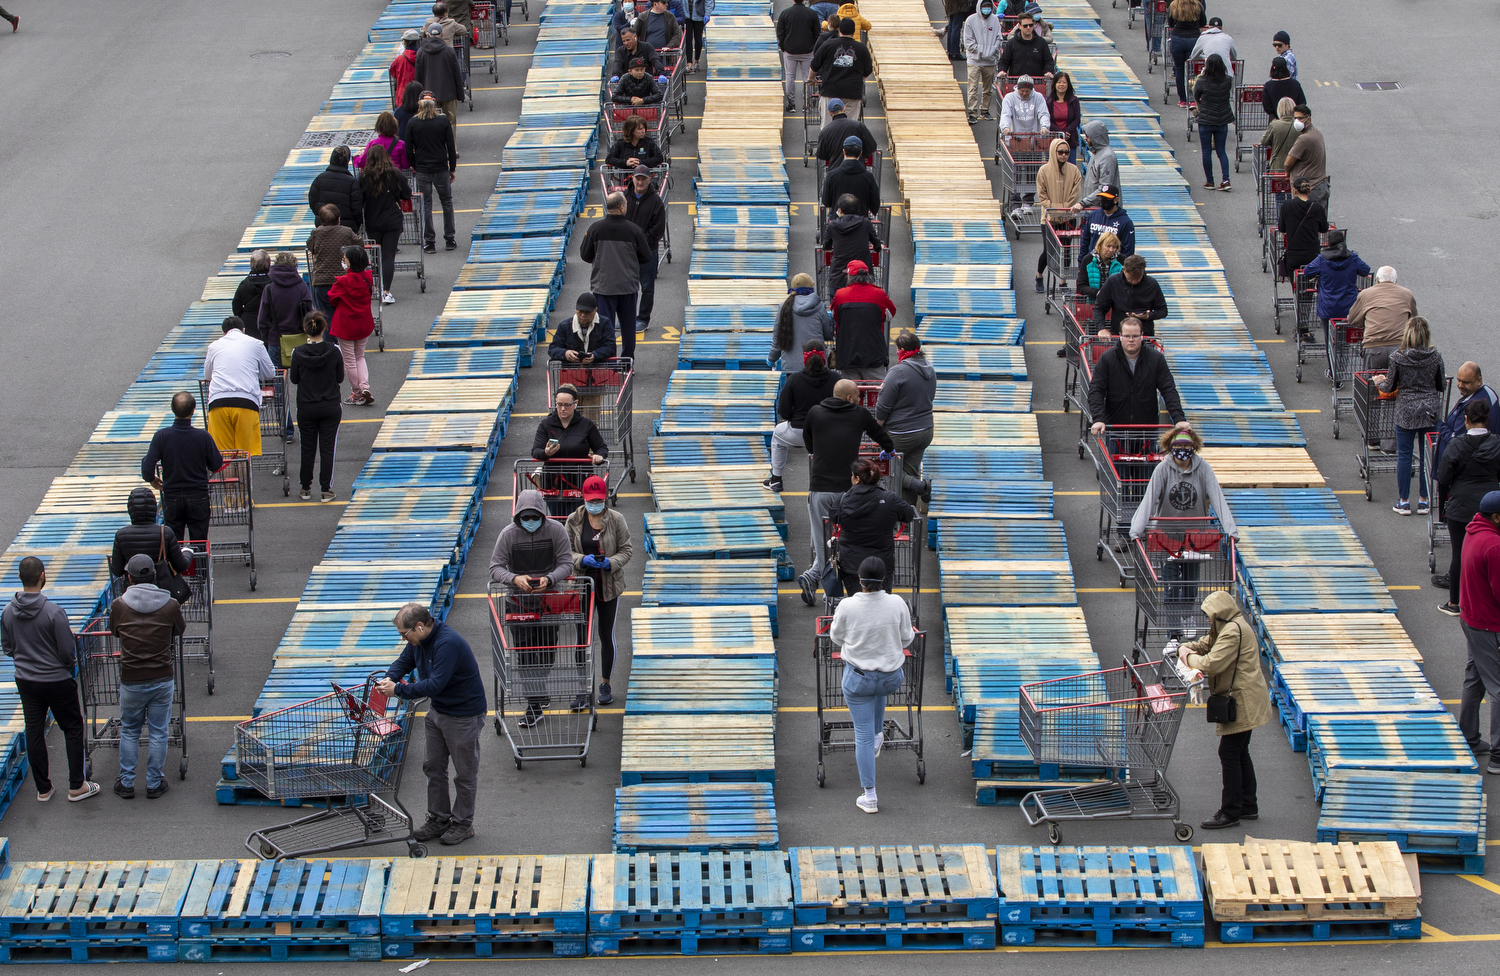 Shoppers line up between pallets outside of Costco Wholesale store in Burnaby, B.C., on April 21, 2020. (Ben Nelms/CBC Vancouver)